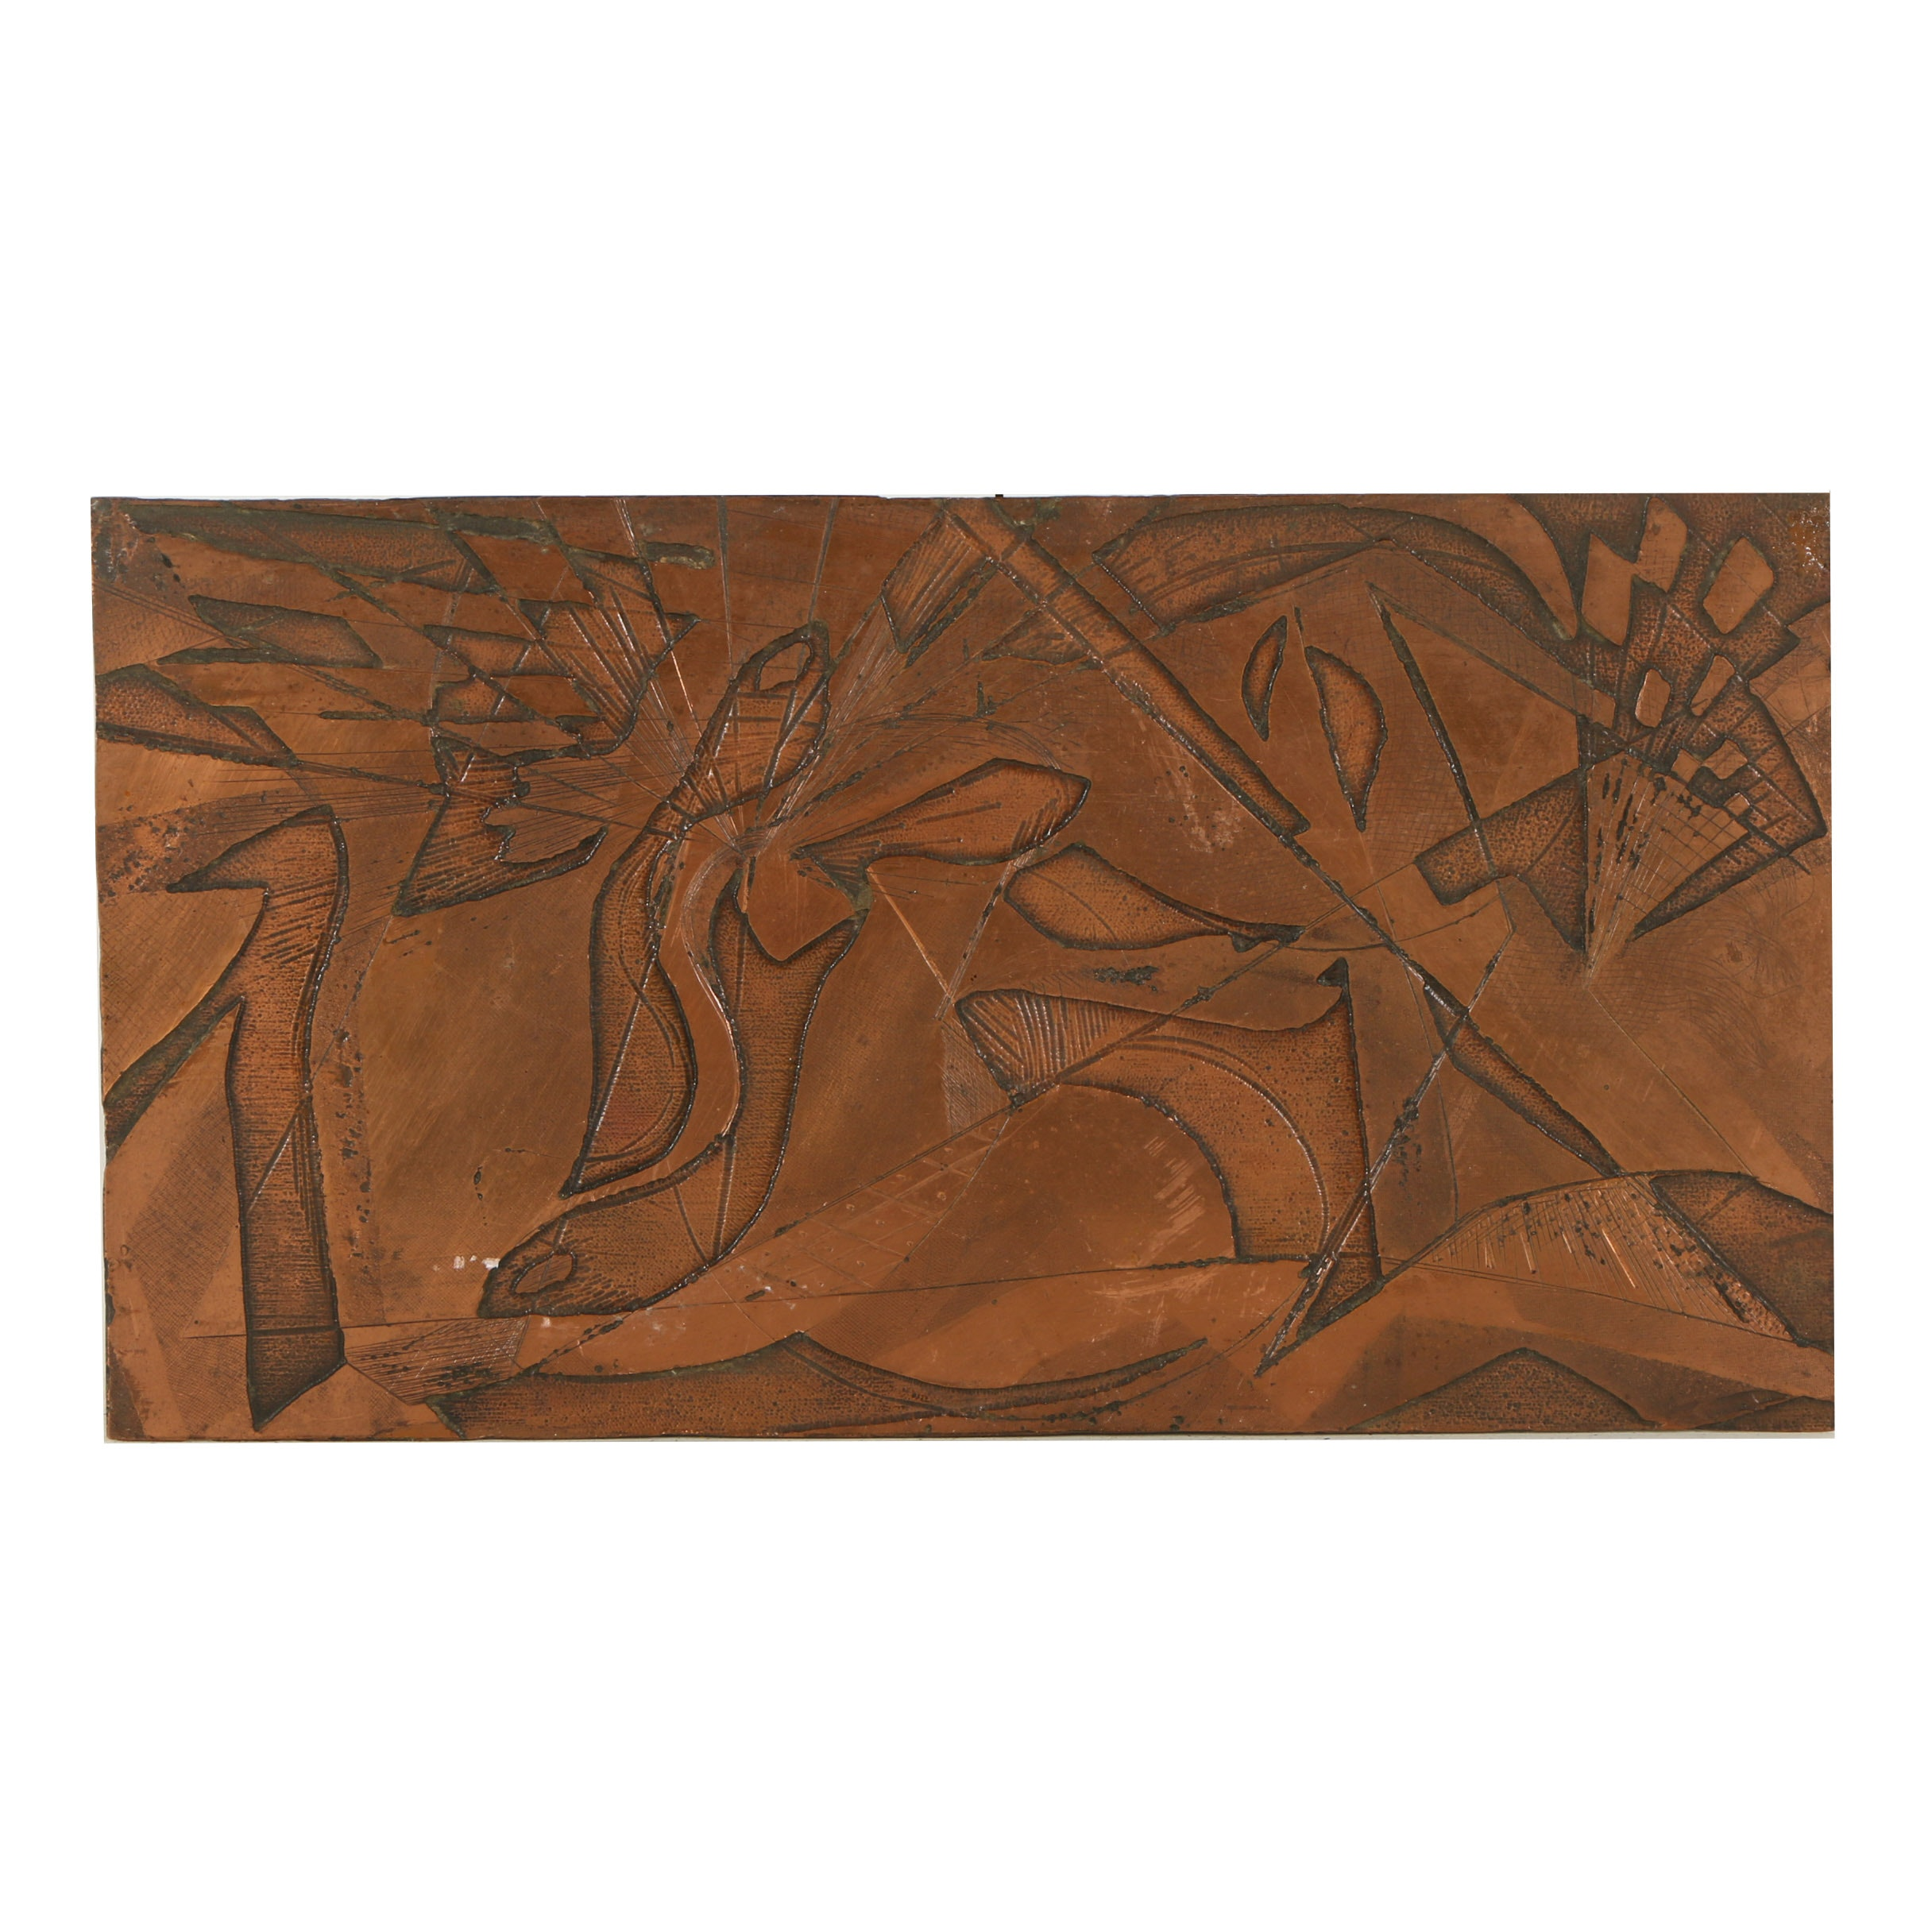 Etched Copper Printing Plate